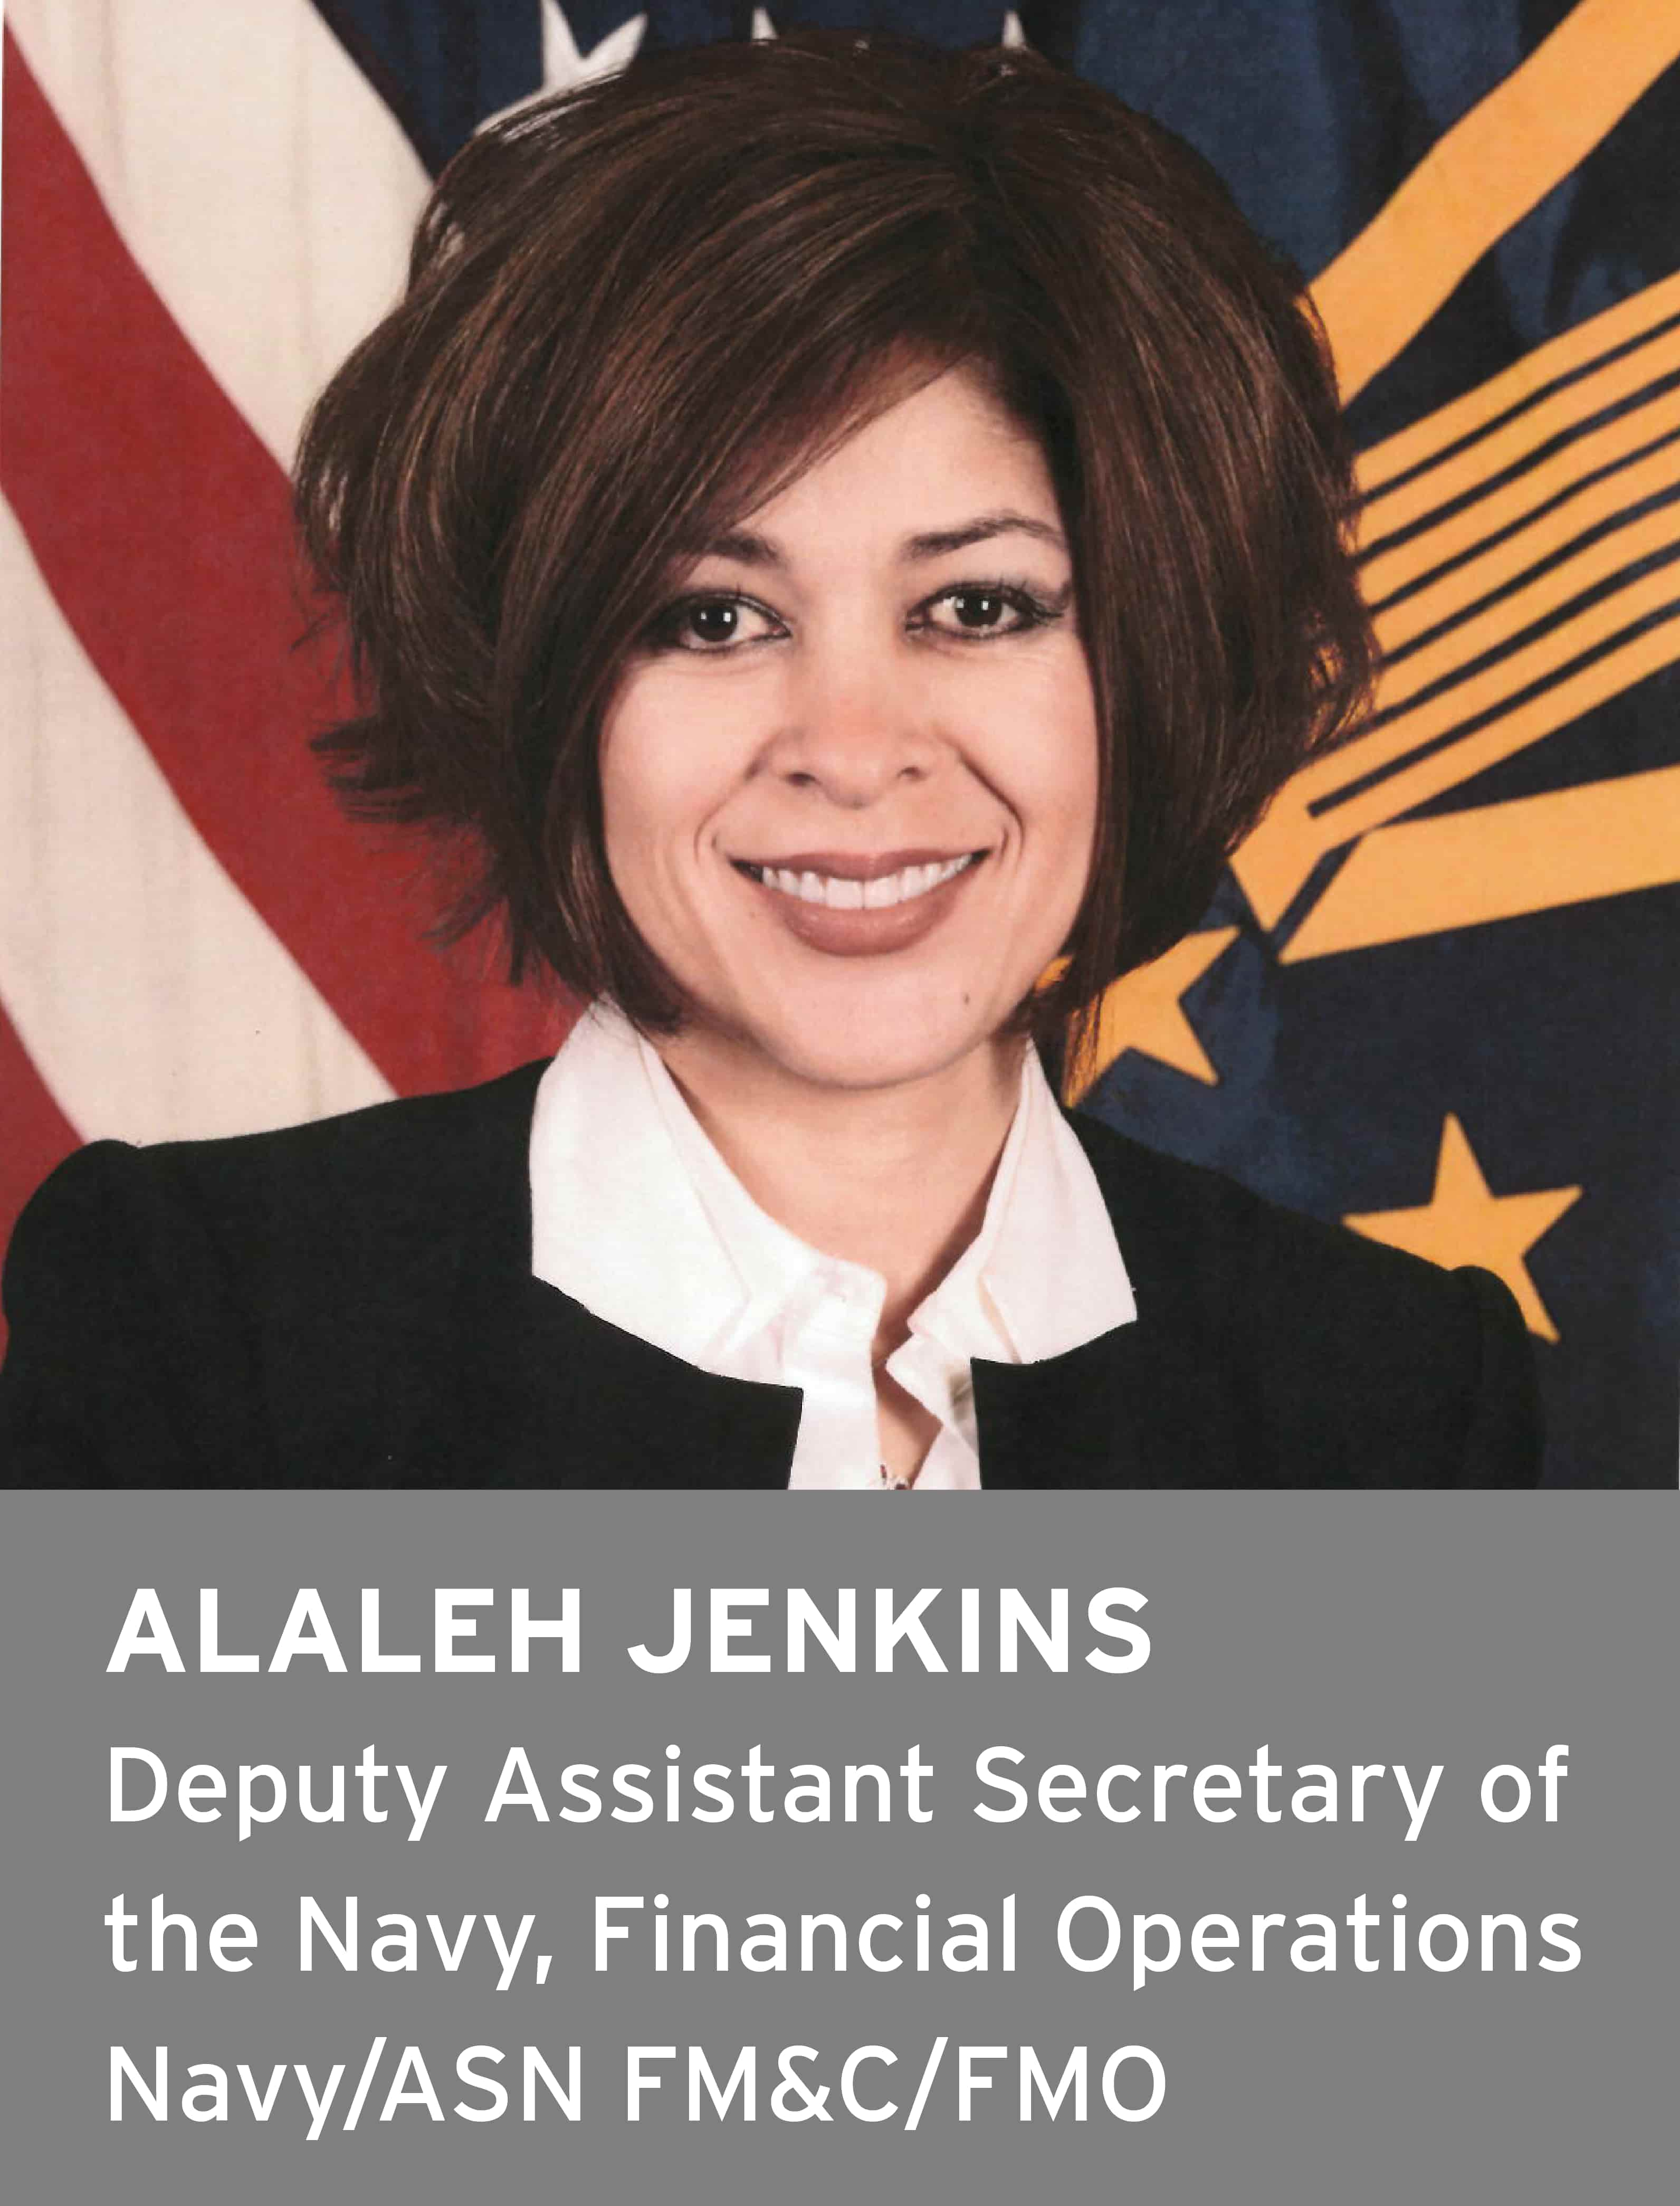 Alaleh Jenkins, Deputy Assistant Secretary for the Navy, Financial Operations, Navy/ASN FM & C/FMO